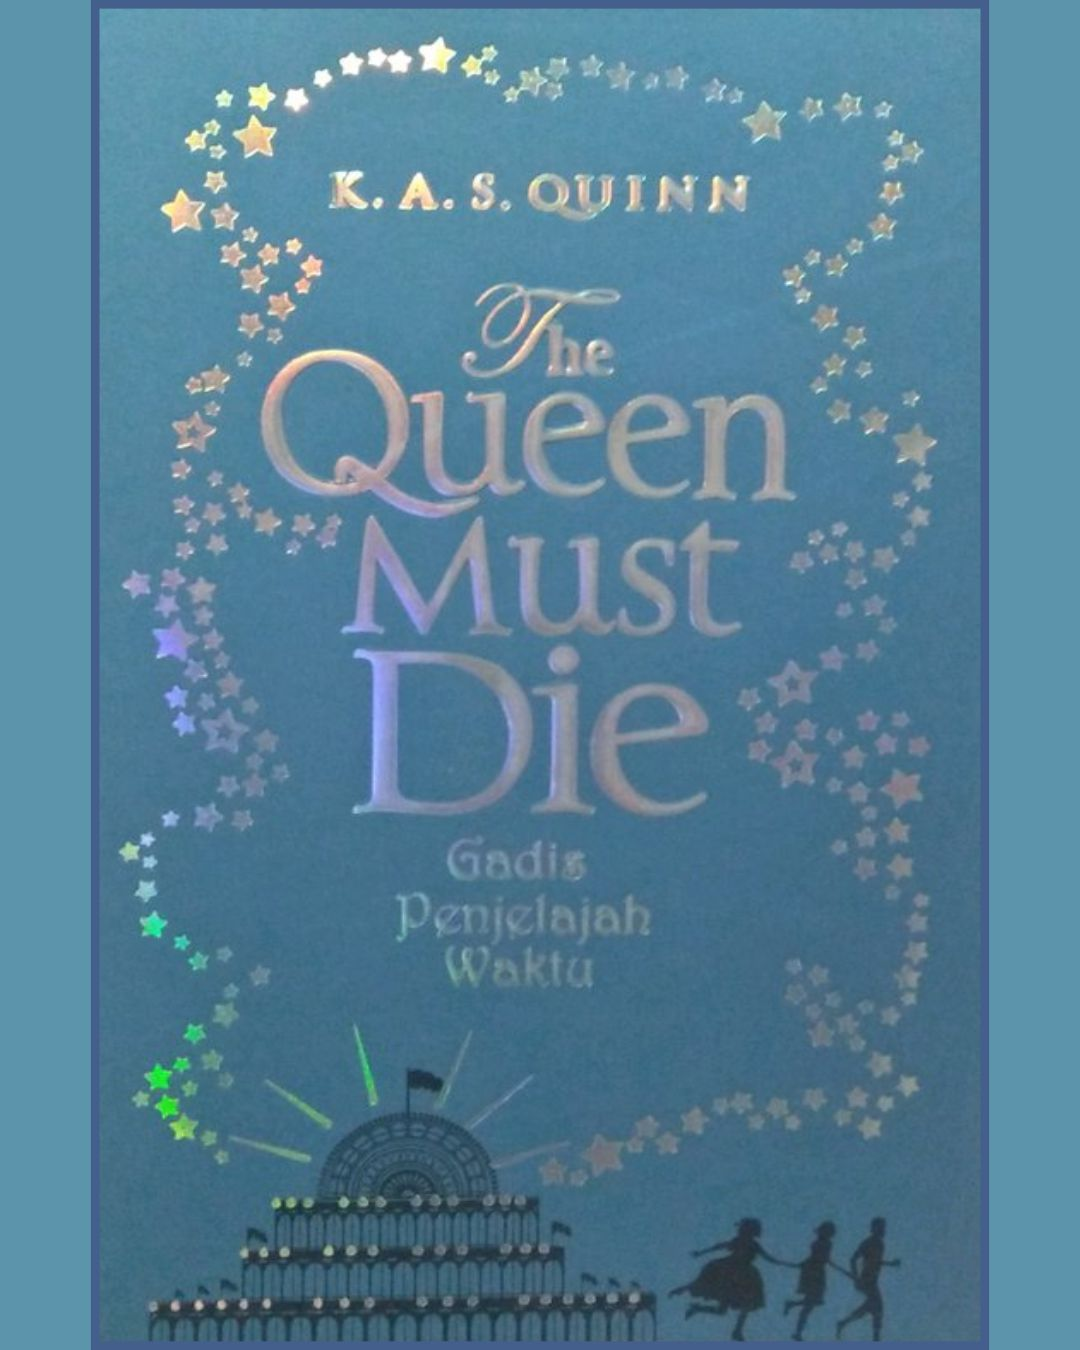 The Queen Must Die: Gadis Penjelajah Waktu